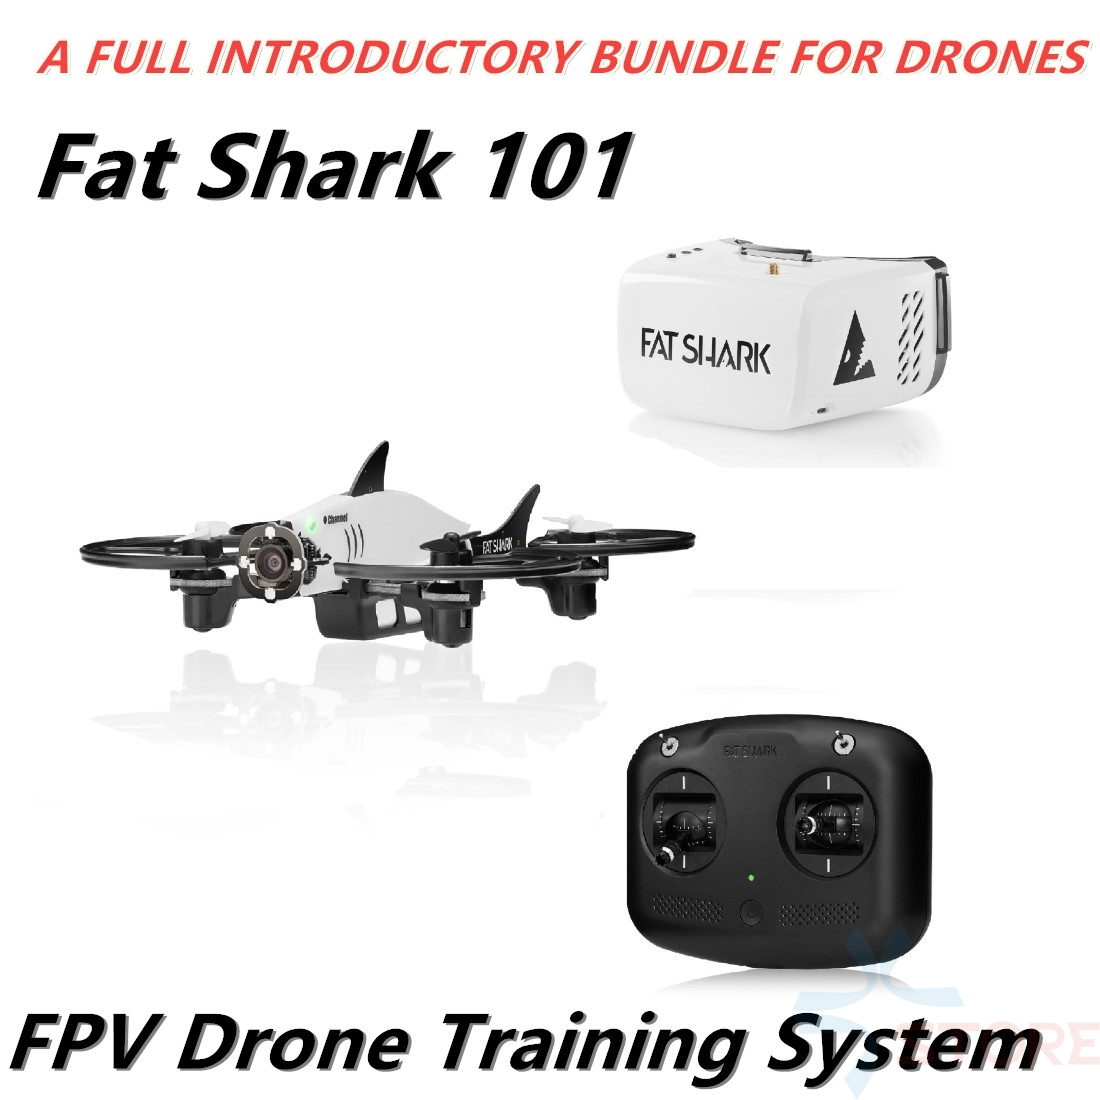 Fat Shark 101 Training System Micro RC Drone Quadcopter With 5.8G 32CH Recon V1 FPV Goggles FPV Drone RTF Starter Combo image